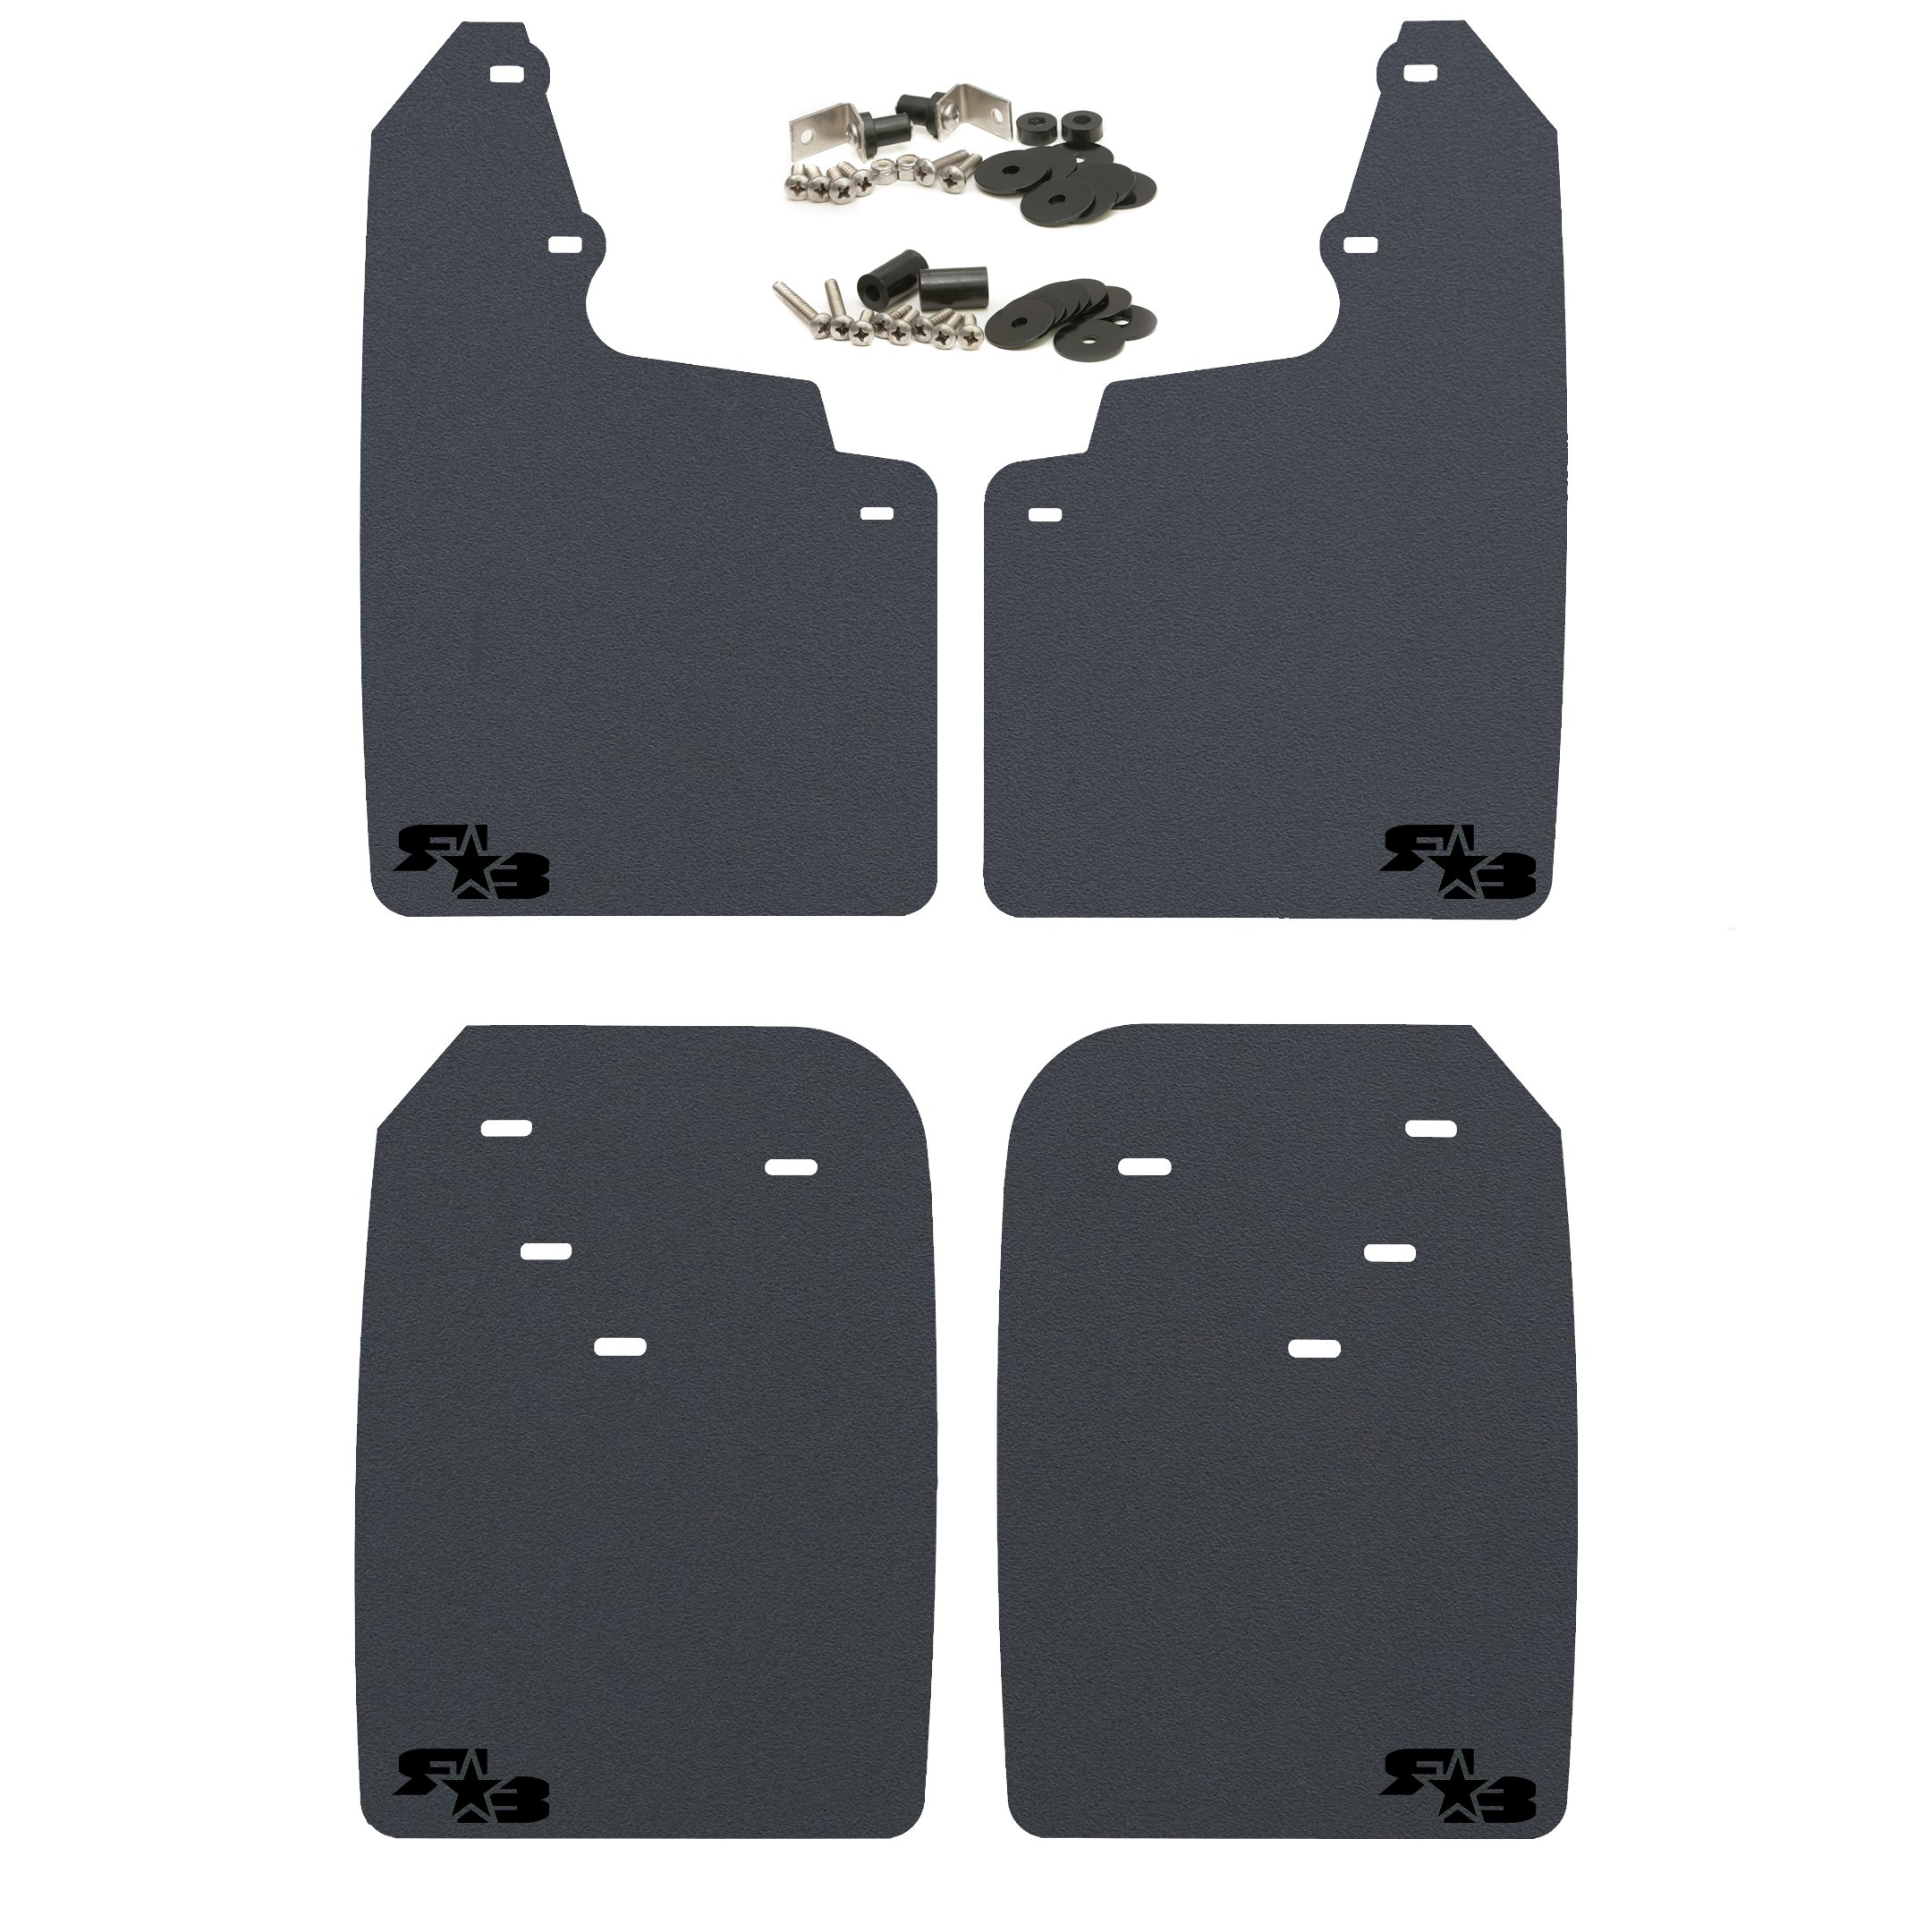 RokBlokz Mud Flaps for Toyota Tacoma - Fits 2016+ Model Years - Multiple Colors Available - Set of 4 - Includes Hardware and Detailed Instructions (Extra Large, Black with Black Logo)